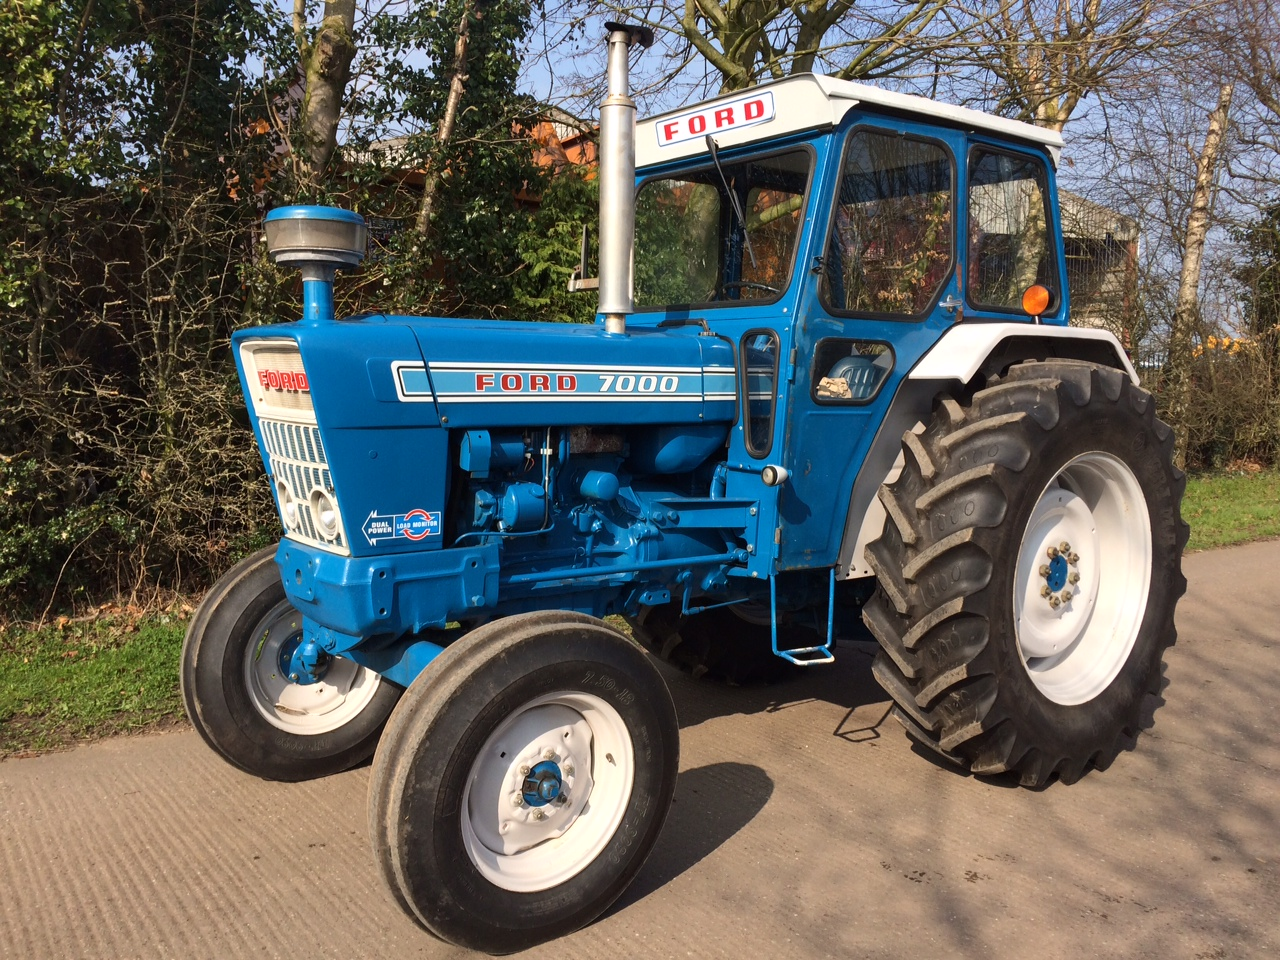 ford rubber craig tractors belt sale built linkage drive for pto from september ph with decal qld rare major restored